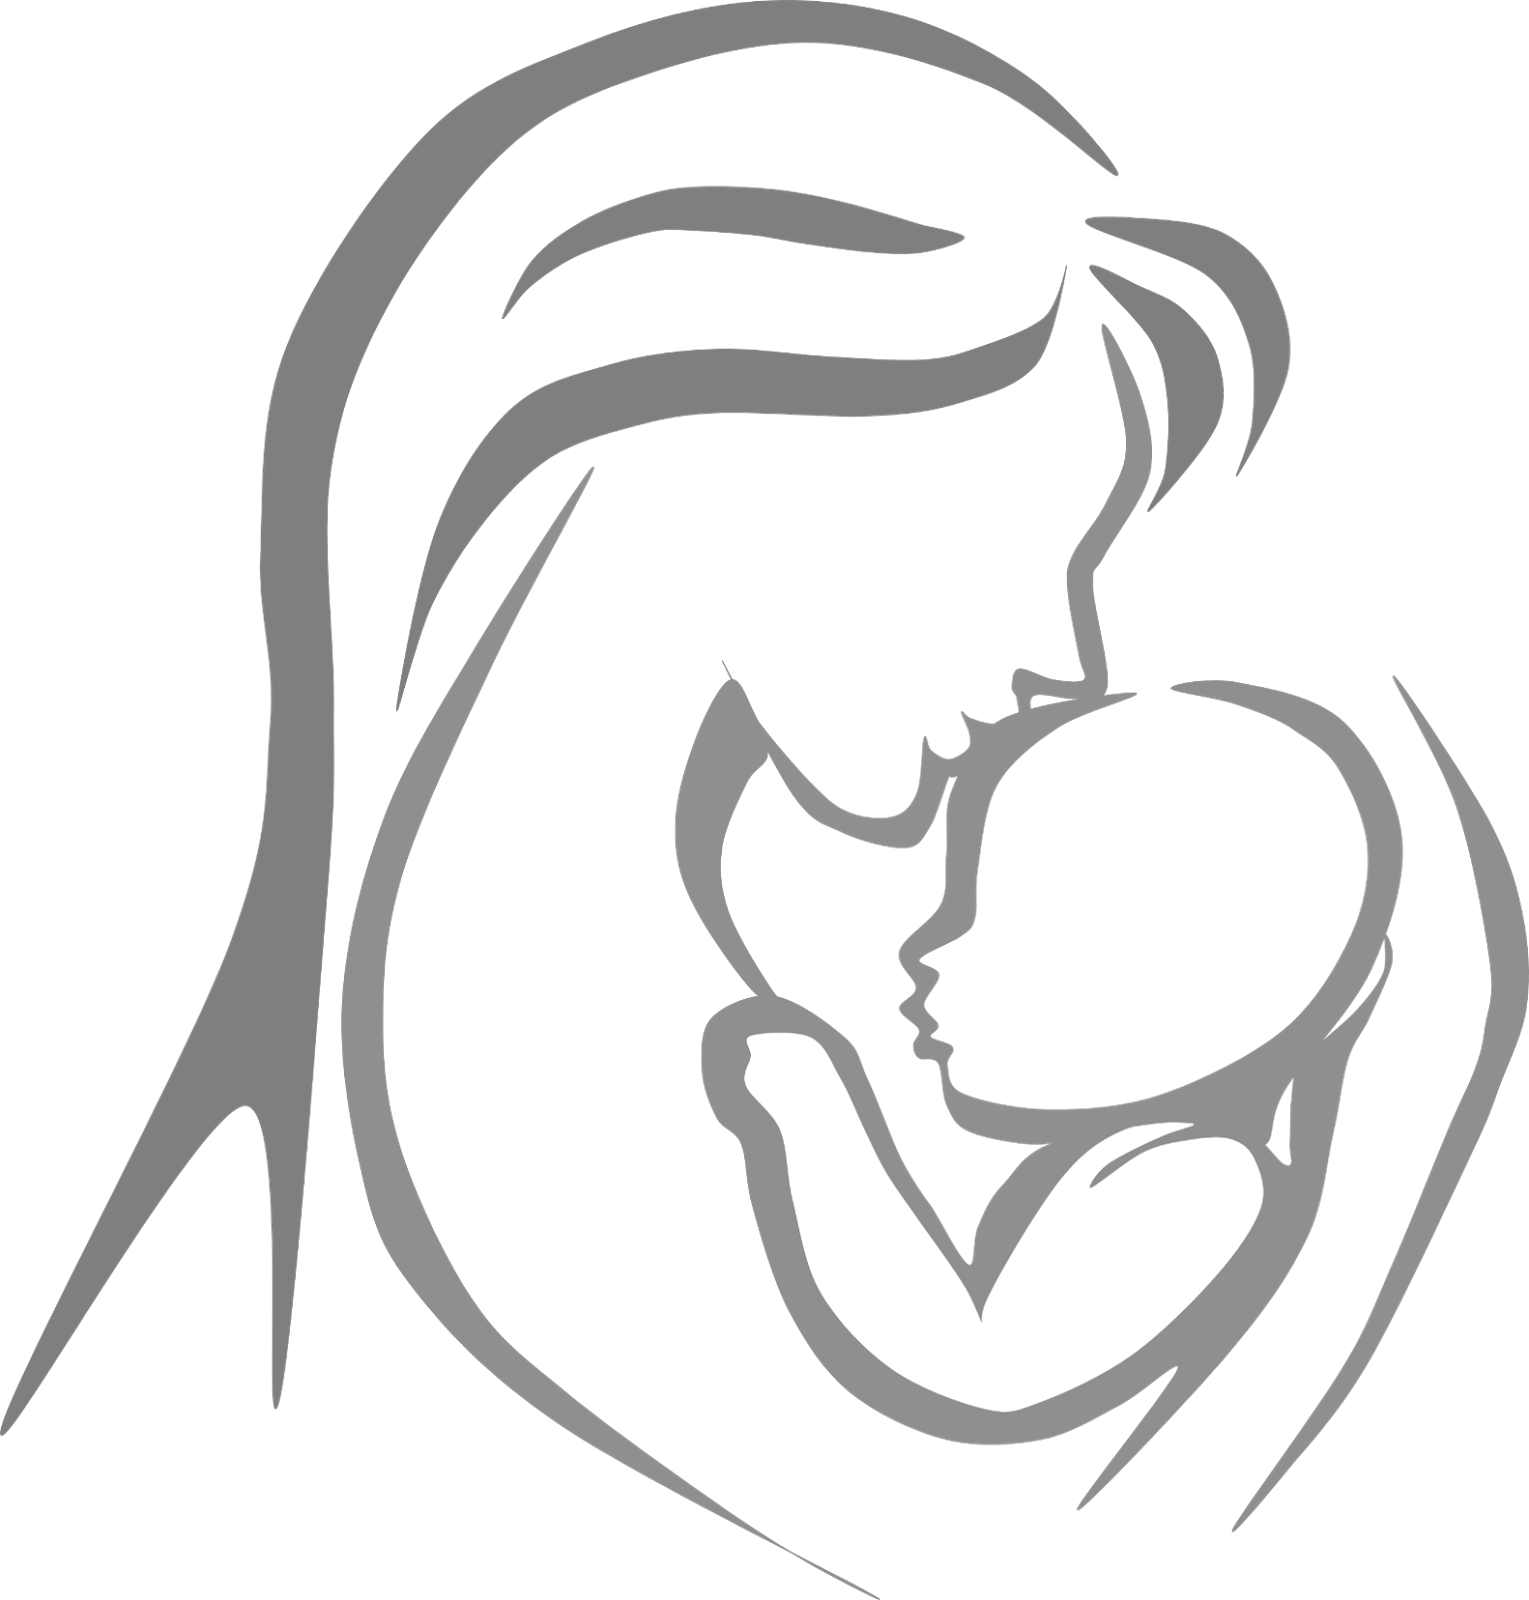 Mother and child clipart #11